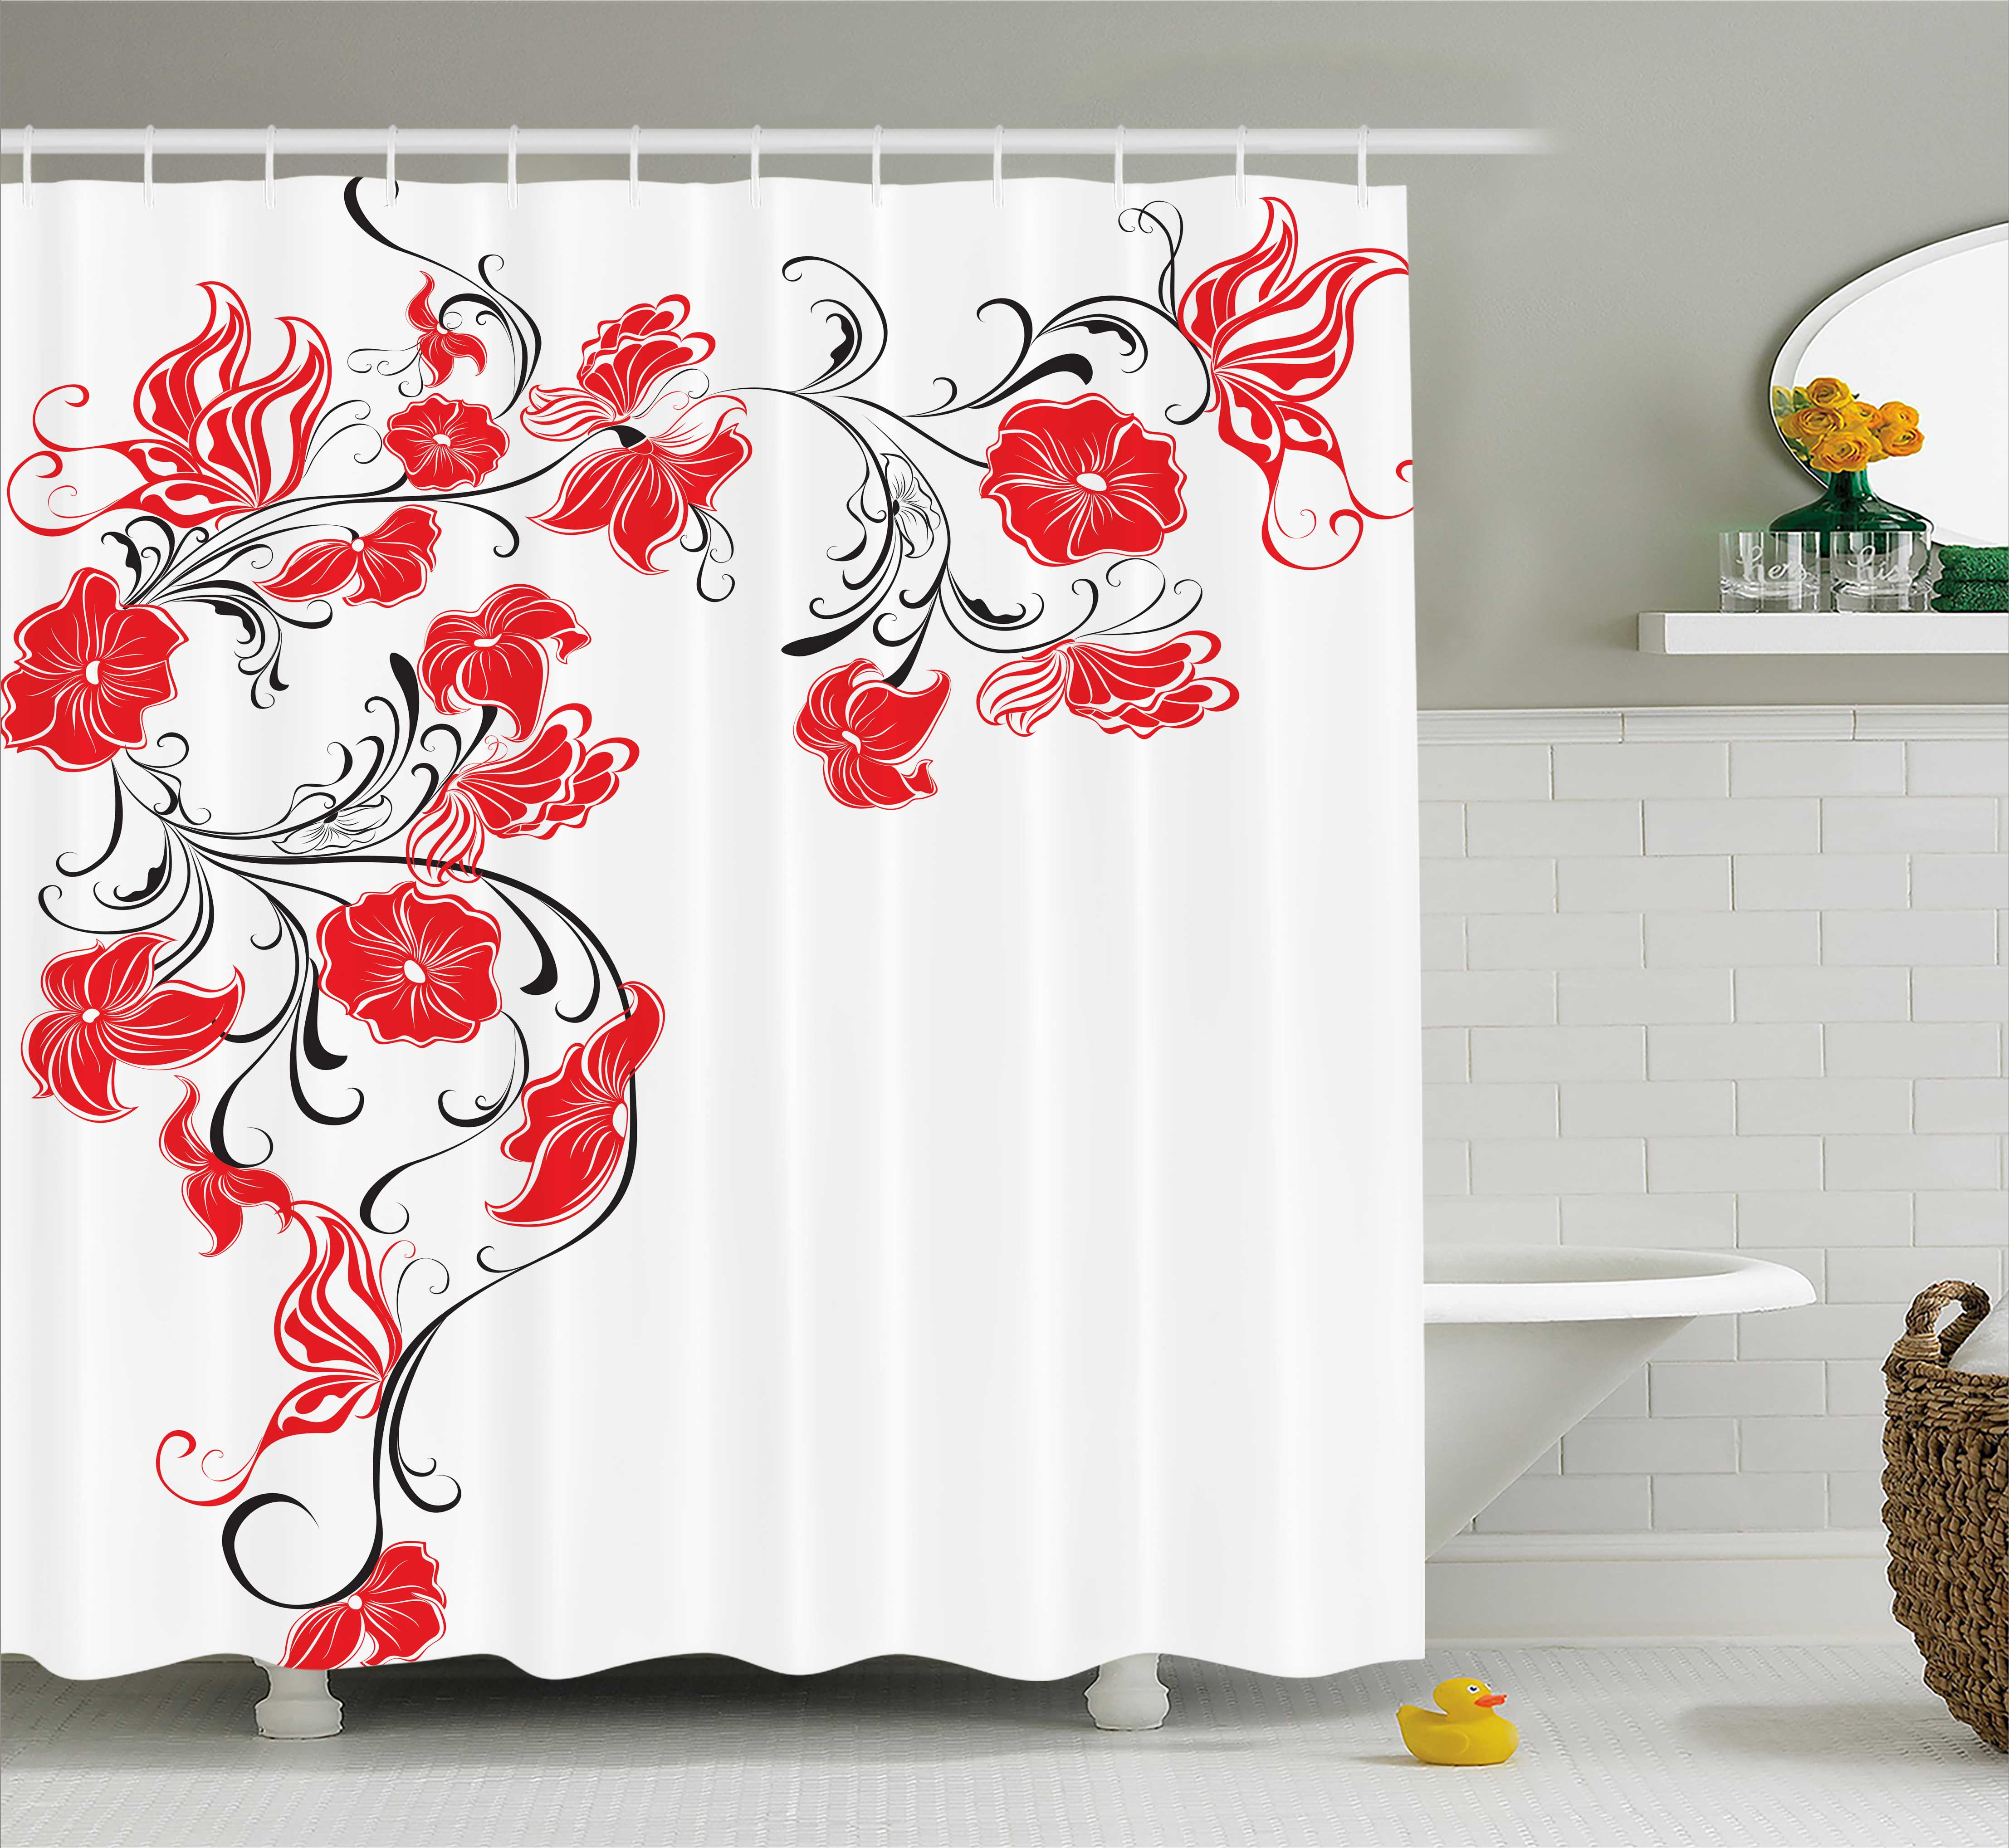 Red And Black Shower Curtain Set Red And Black Shower Curtain Japanese Asian Design Flowers Swirls Ivy And Leaves Butterflies Image Fabric Bathroom Set With Hooks Scarlet And